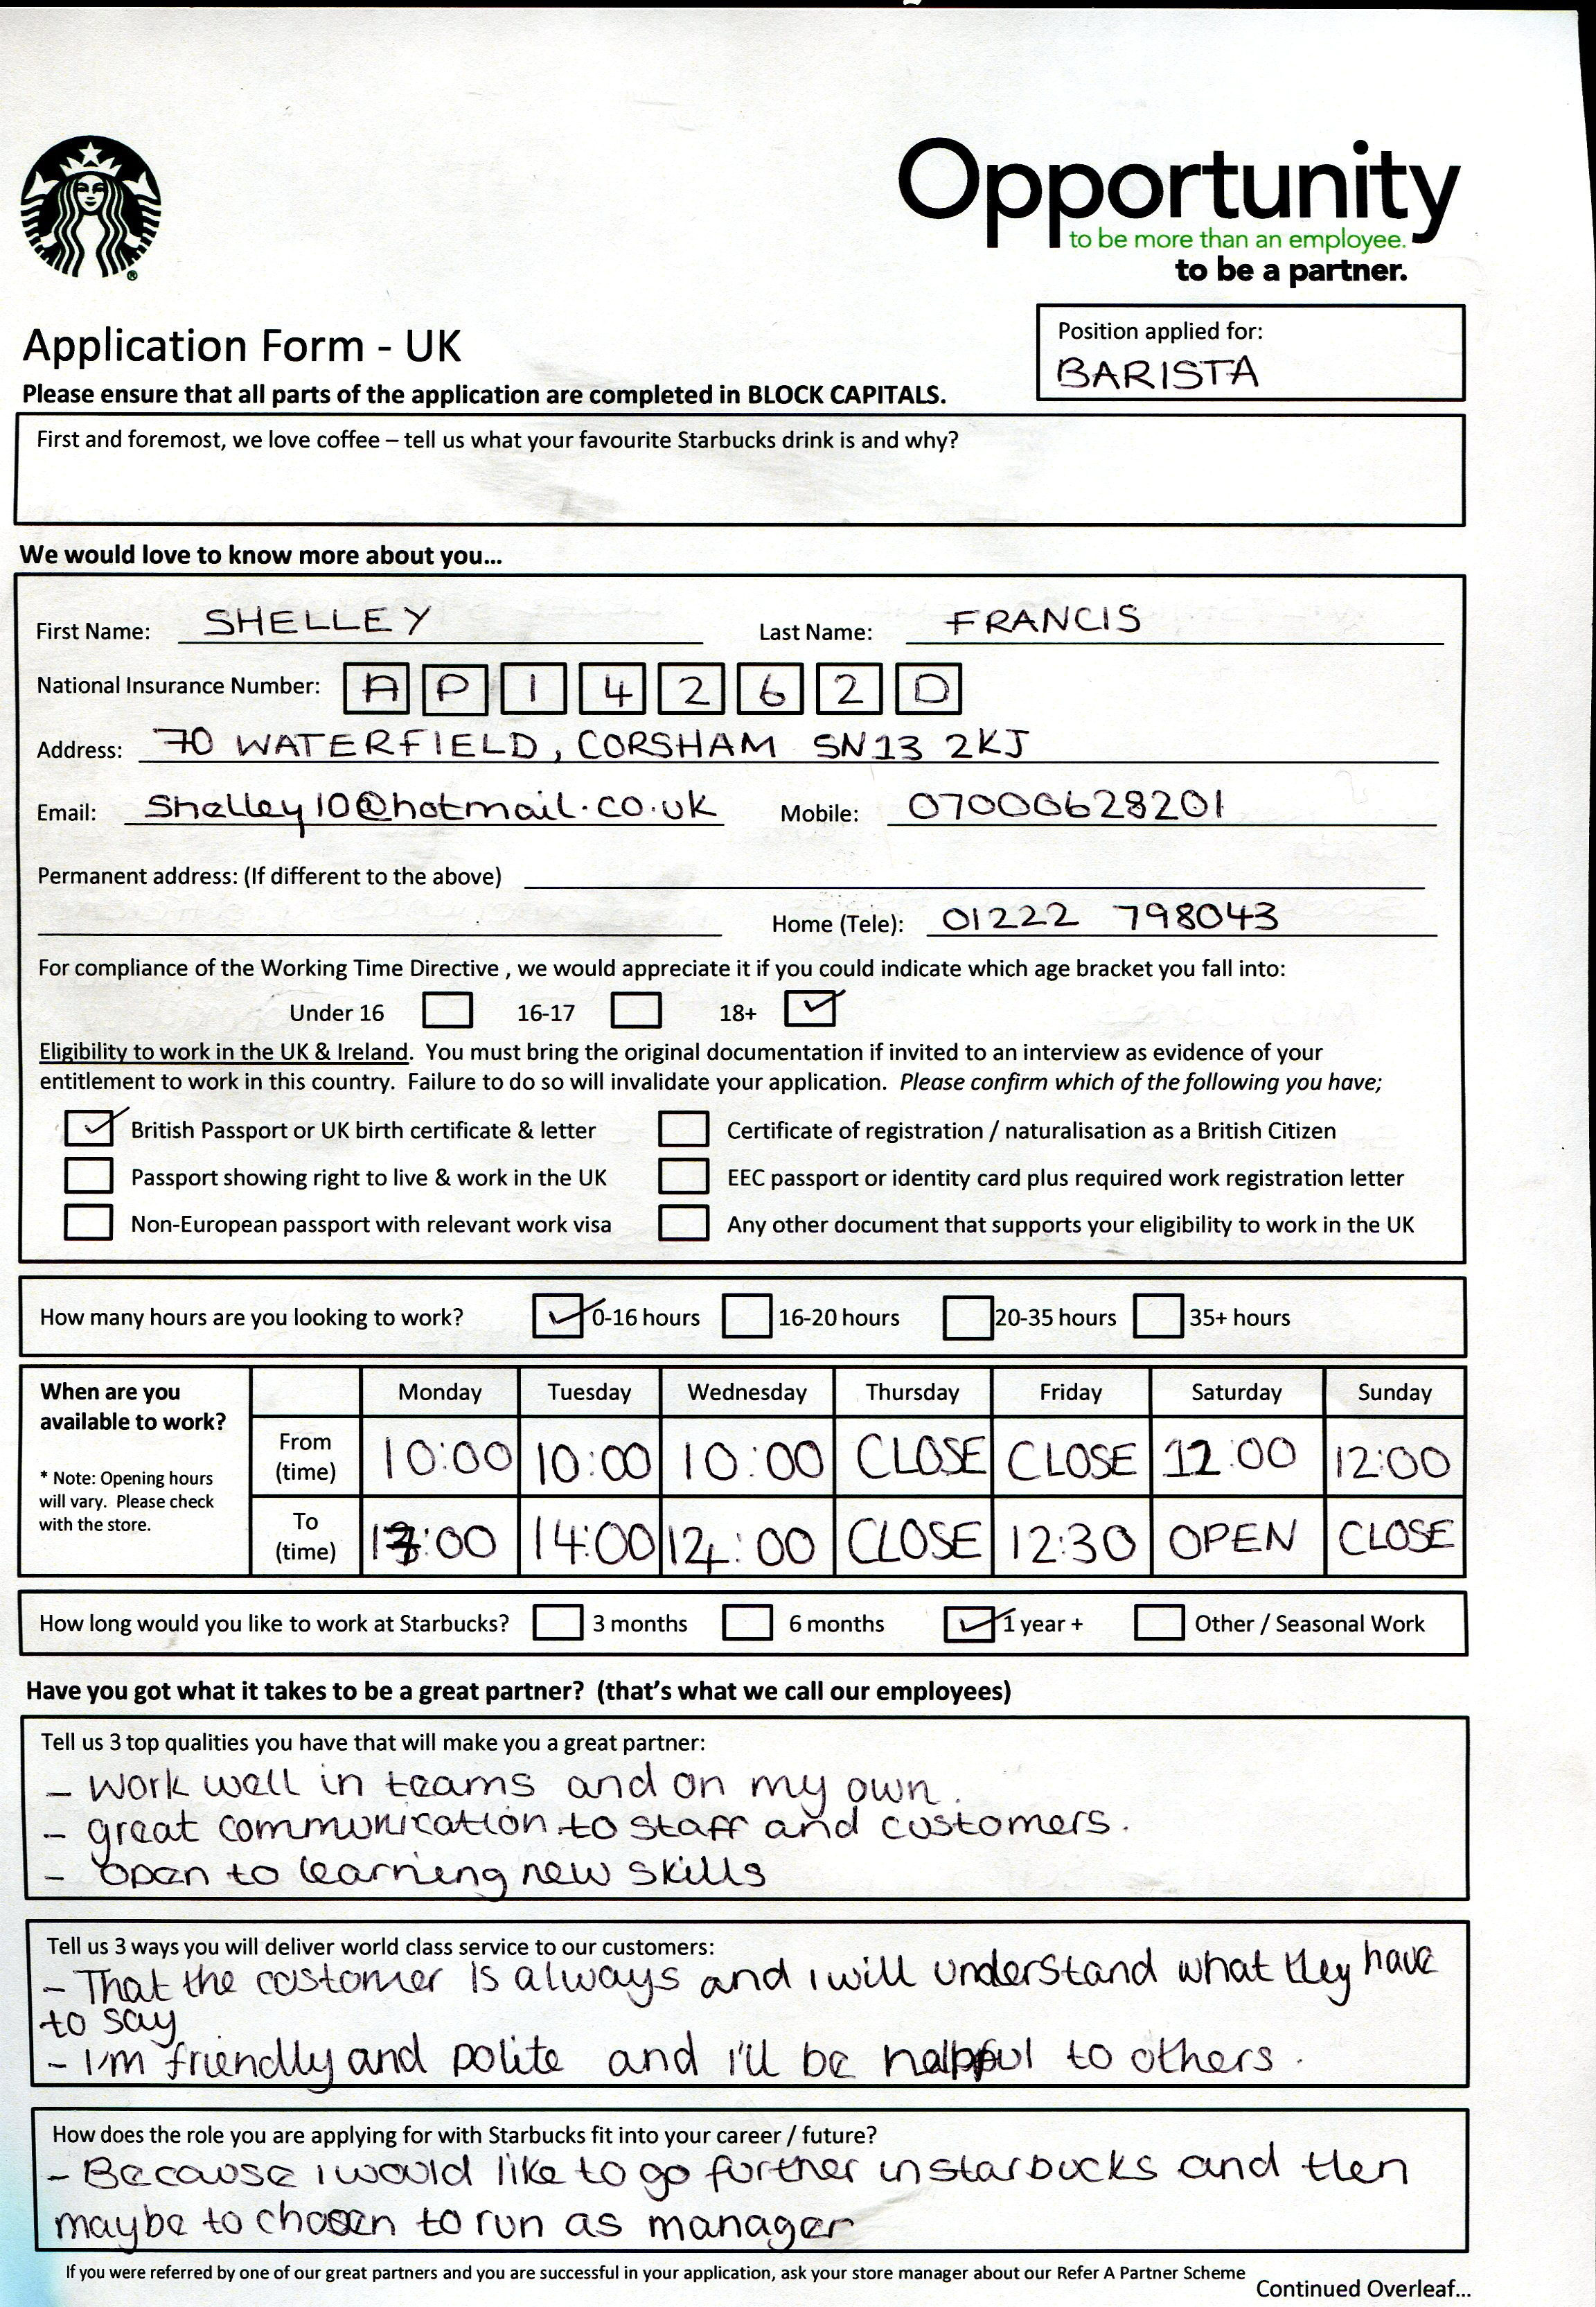 Starbucks.com Job Application Form